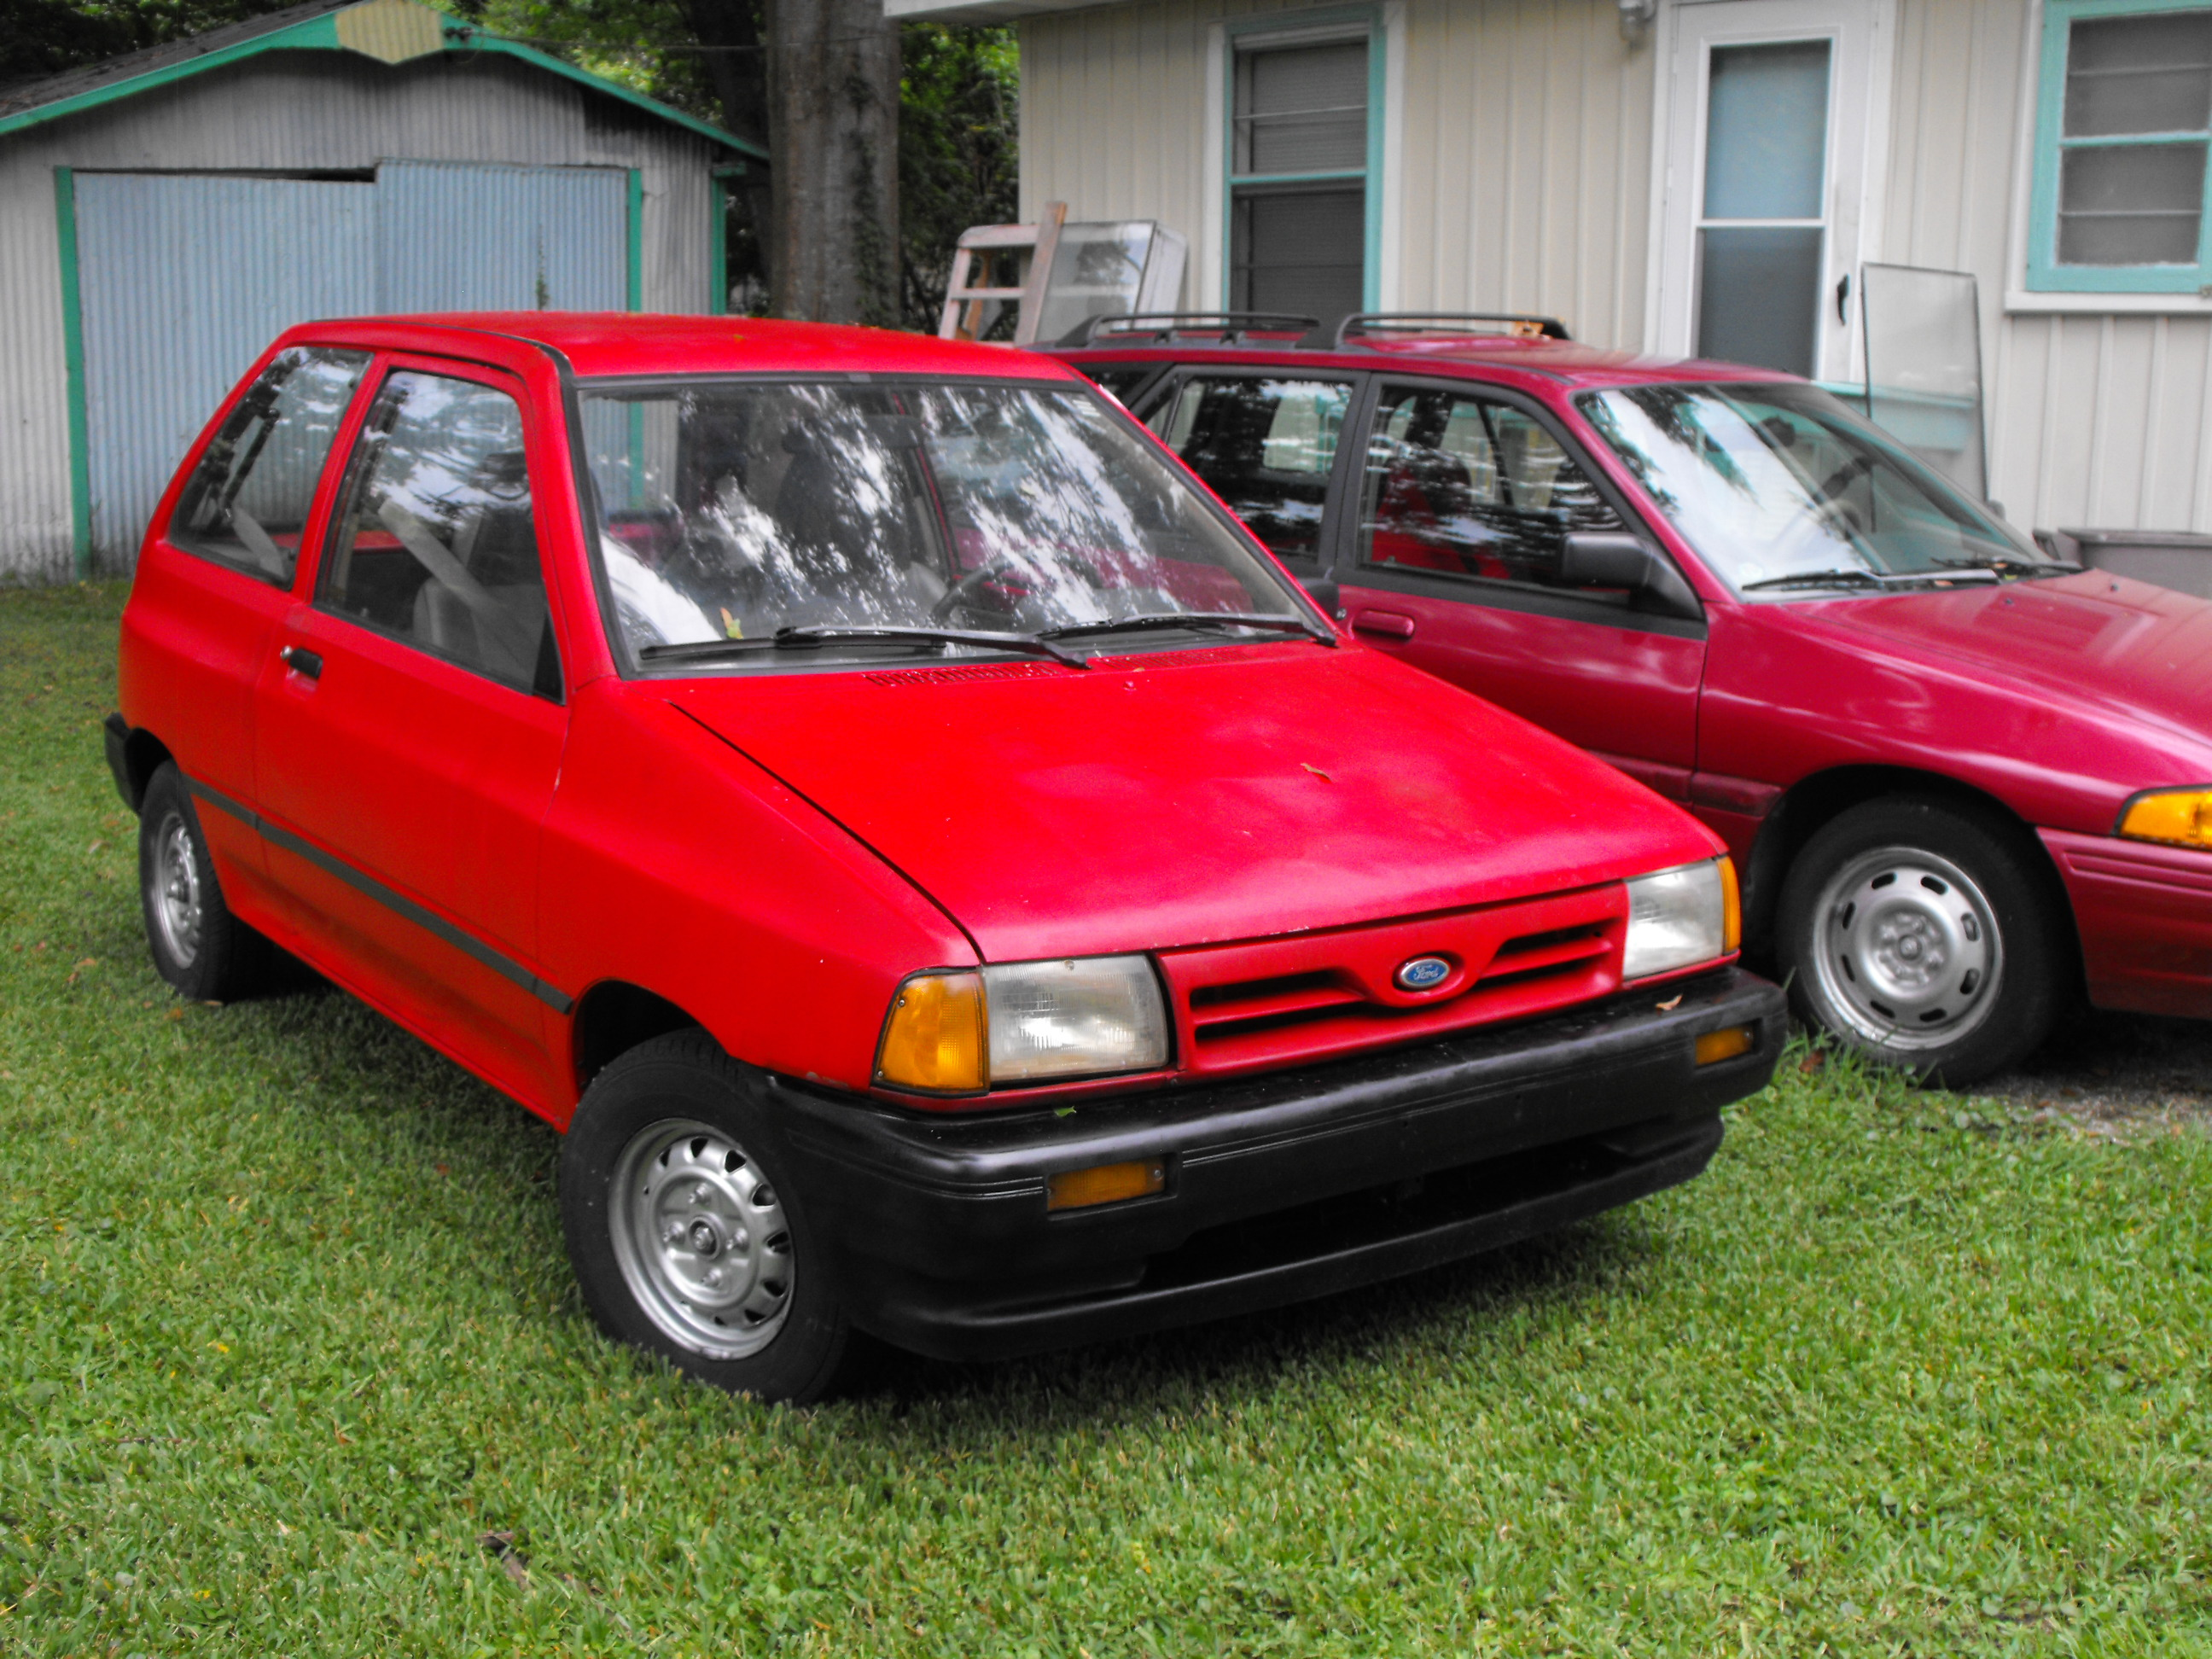 Carried A Spinet Piano In The Back Once Always No Seat For More Cargo Driven Festiva Or Aspire Same Motor And Drivetrain Basically Ever Since